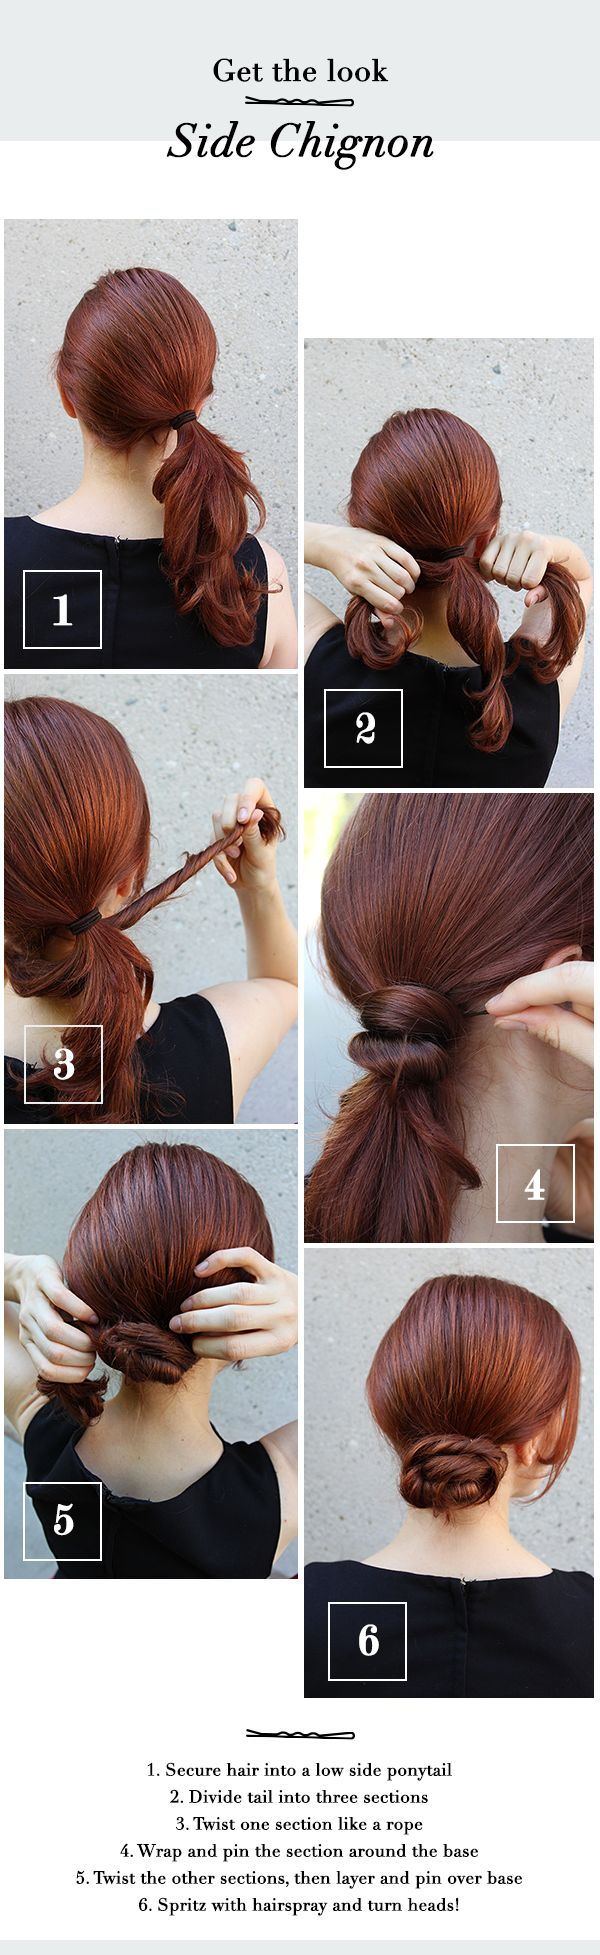 Get the look! How to style a side chignon in 6 easy steps: http://www.esalon.com/blog/get-the-look-side-chignon/